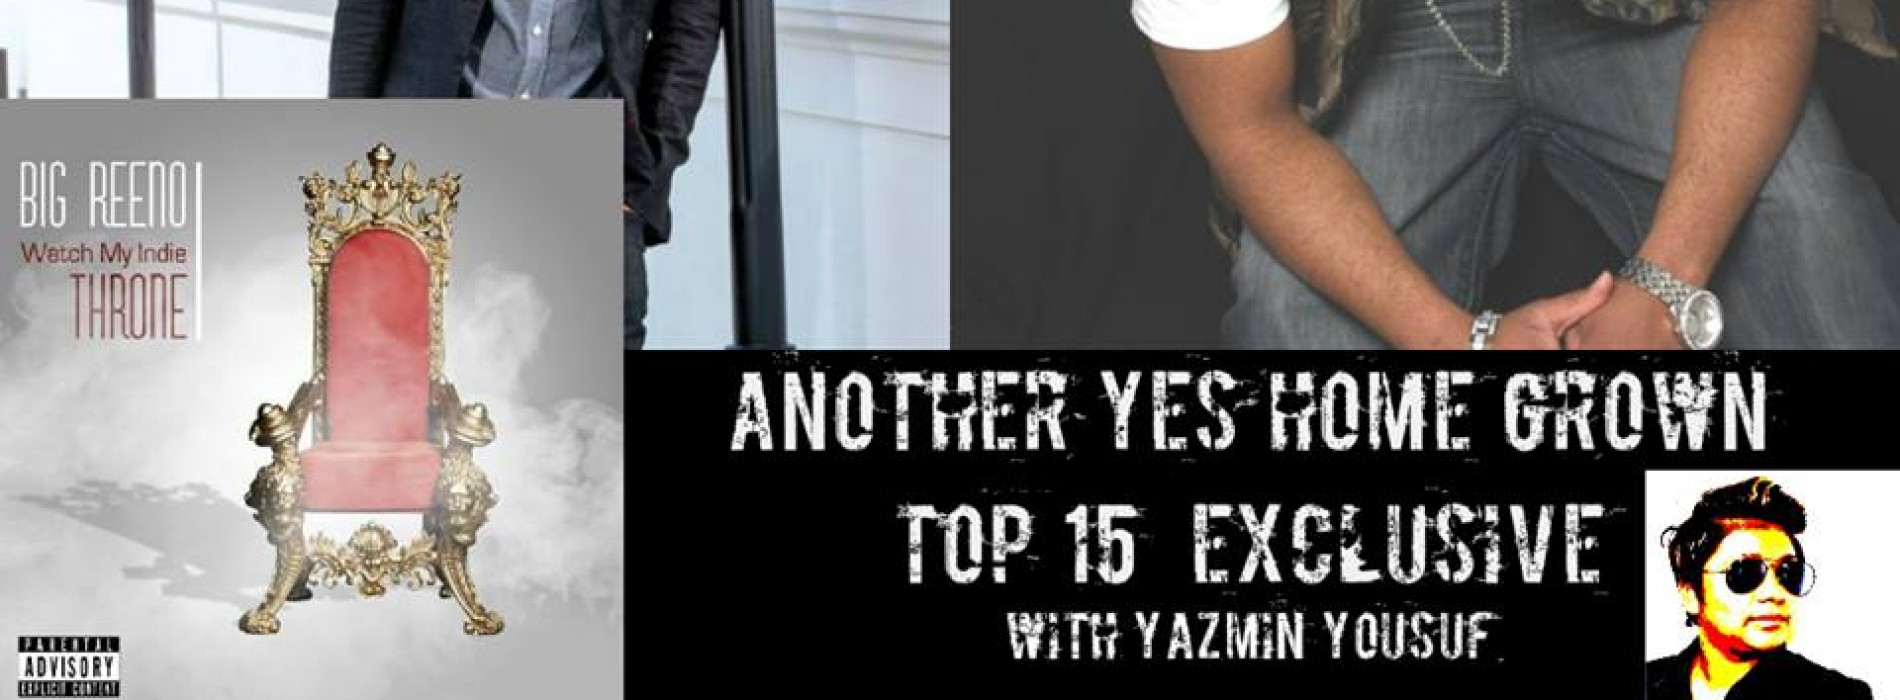 On The YES Home Grown Top 15 Today